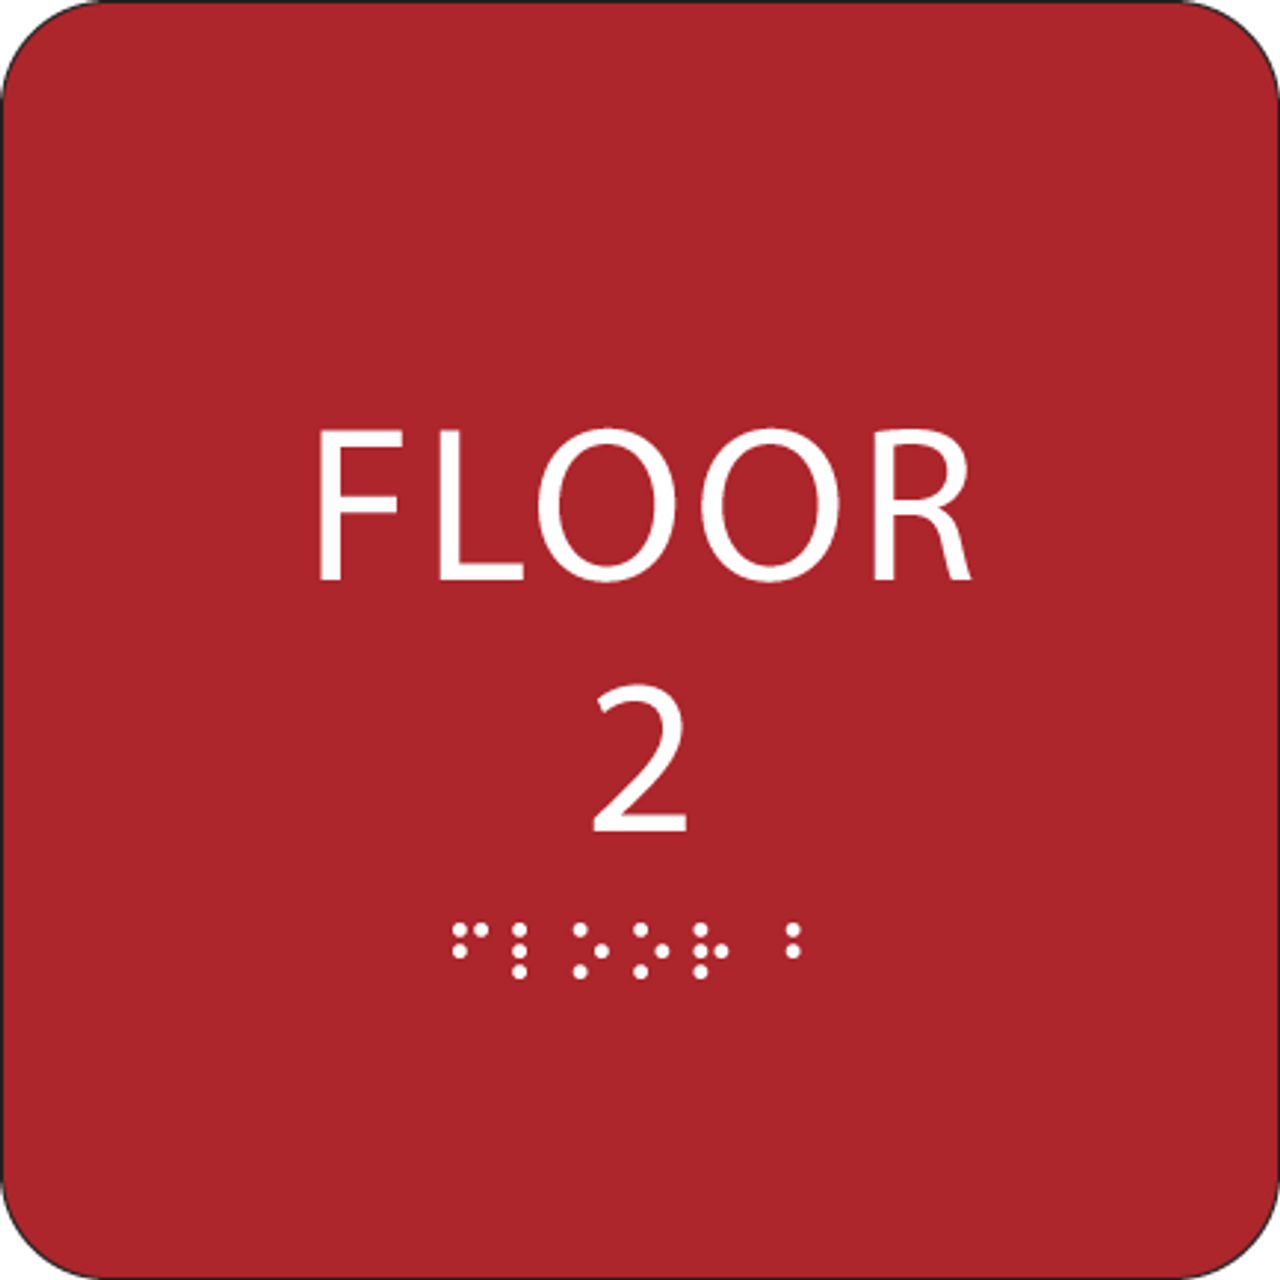 Red Floor 2 Identification Sign